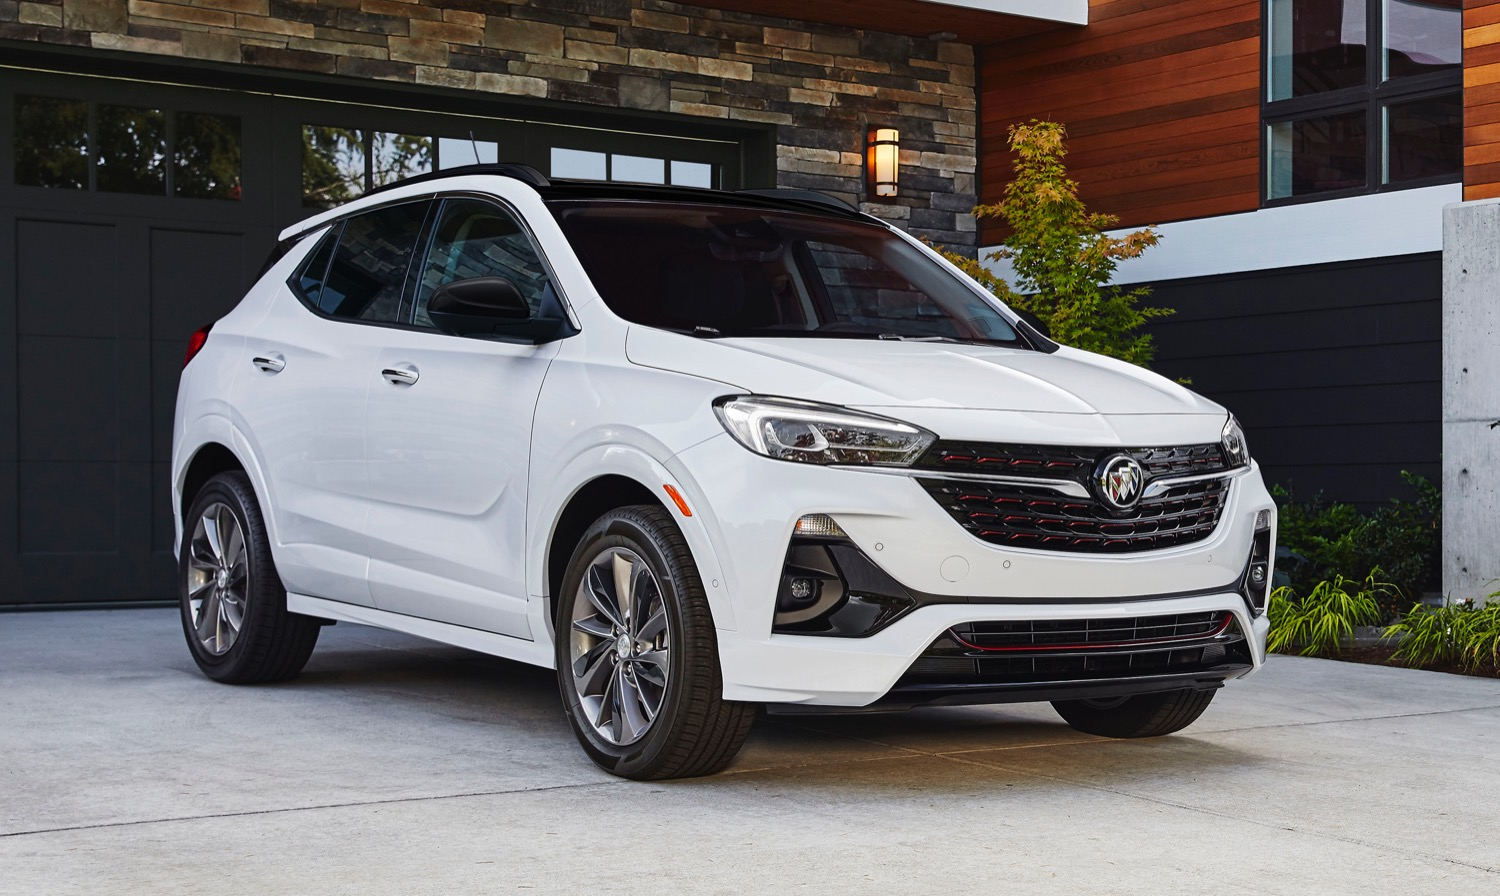 Buick Encore Gx Discount, Special Lease Offer June 2020 | Gm New 2022 Buick Encore Gx Owners Manual, News, Reviews